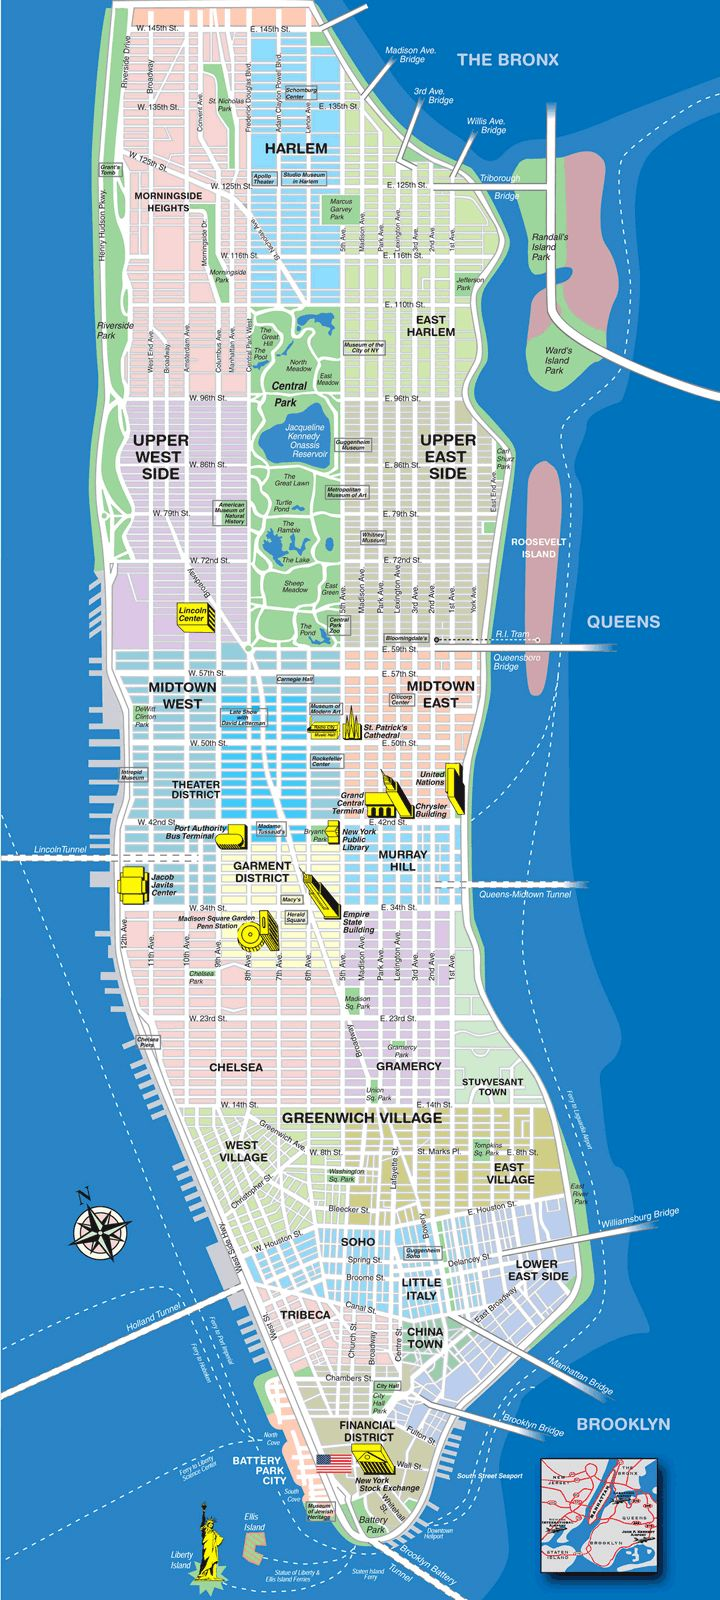 printable+shopping+map+of+new+york+city | Quick Navigation: Map of New York City Manhattan